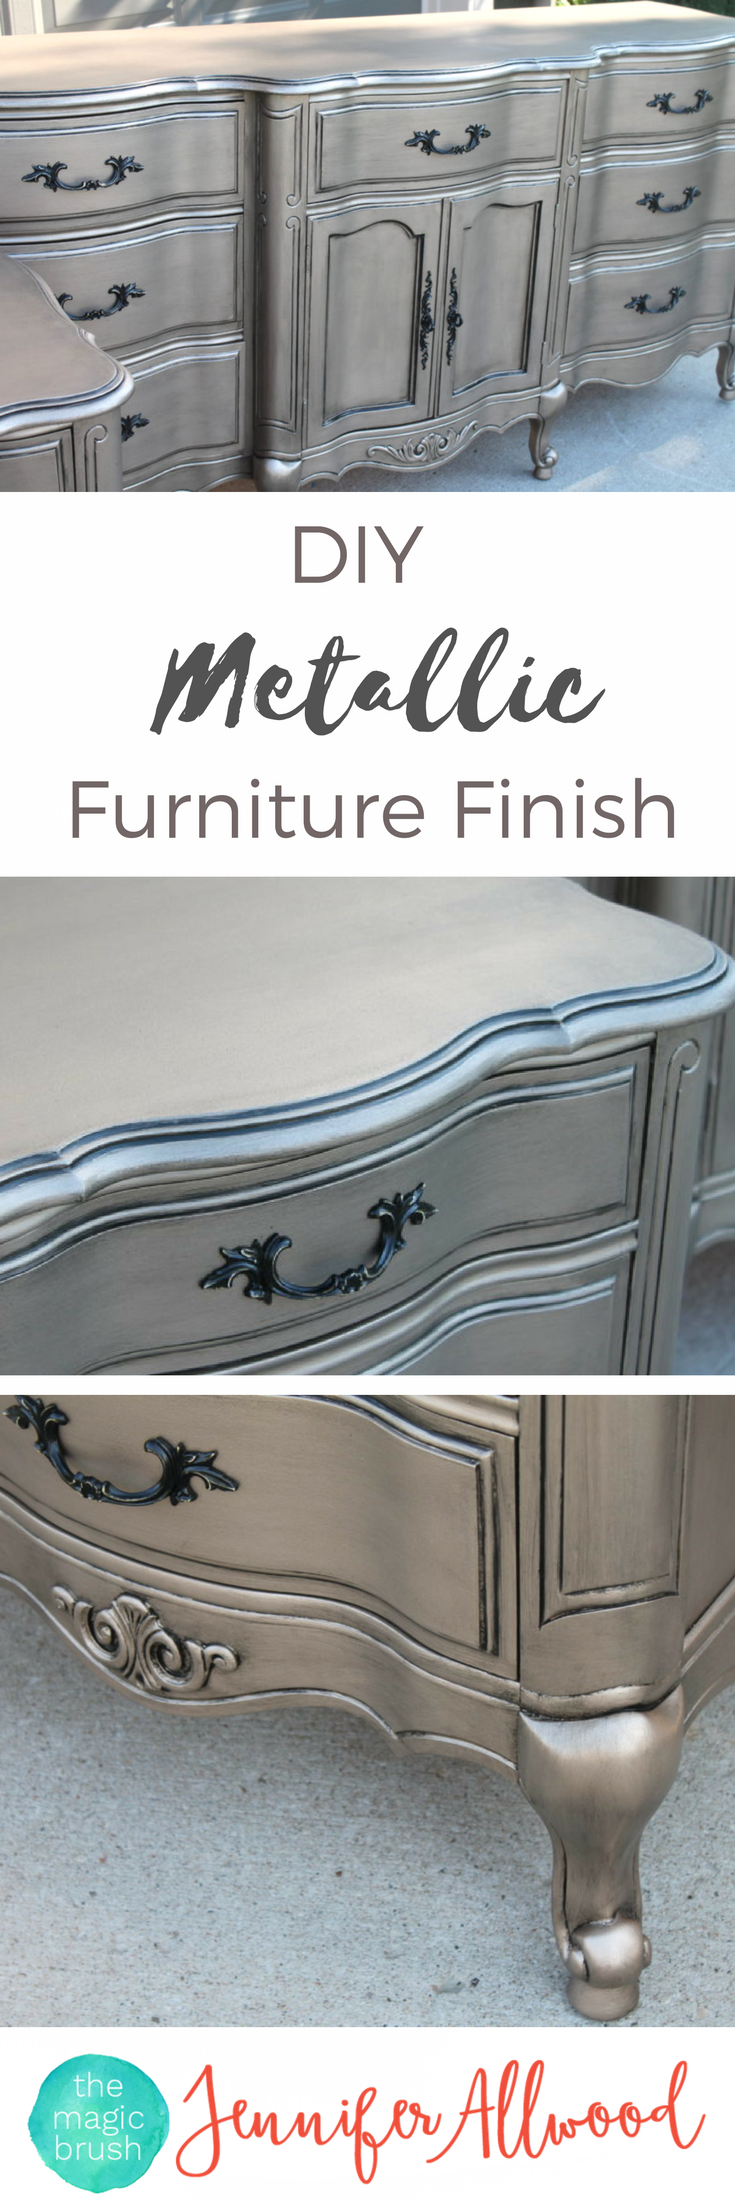 Silver Furniture – My most talked about finish | The Magic Brush